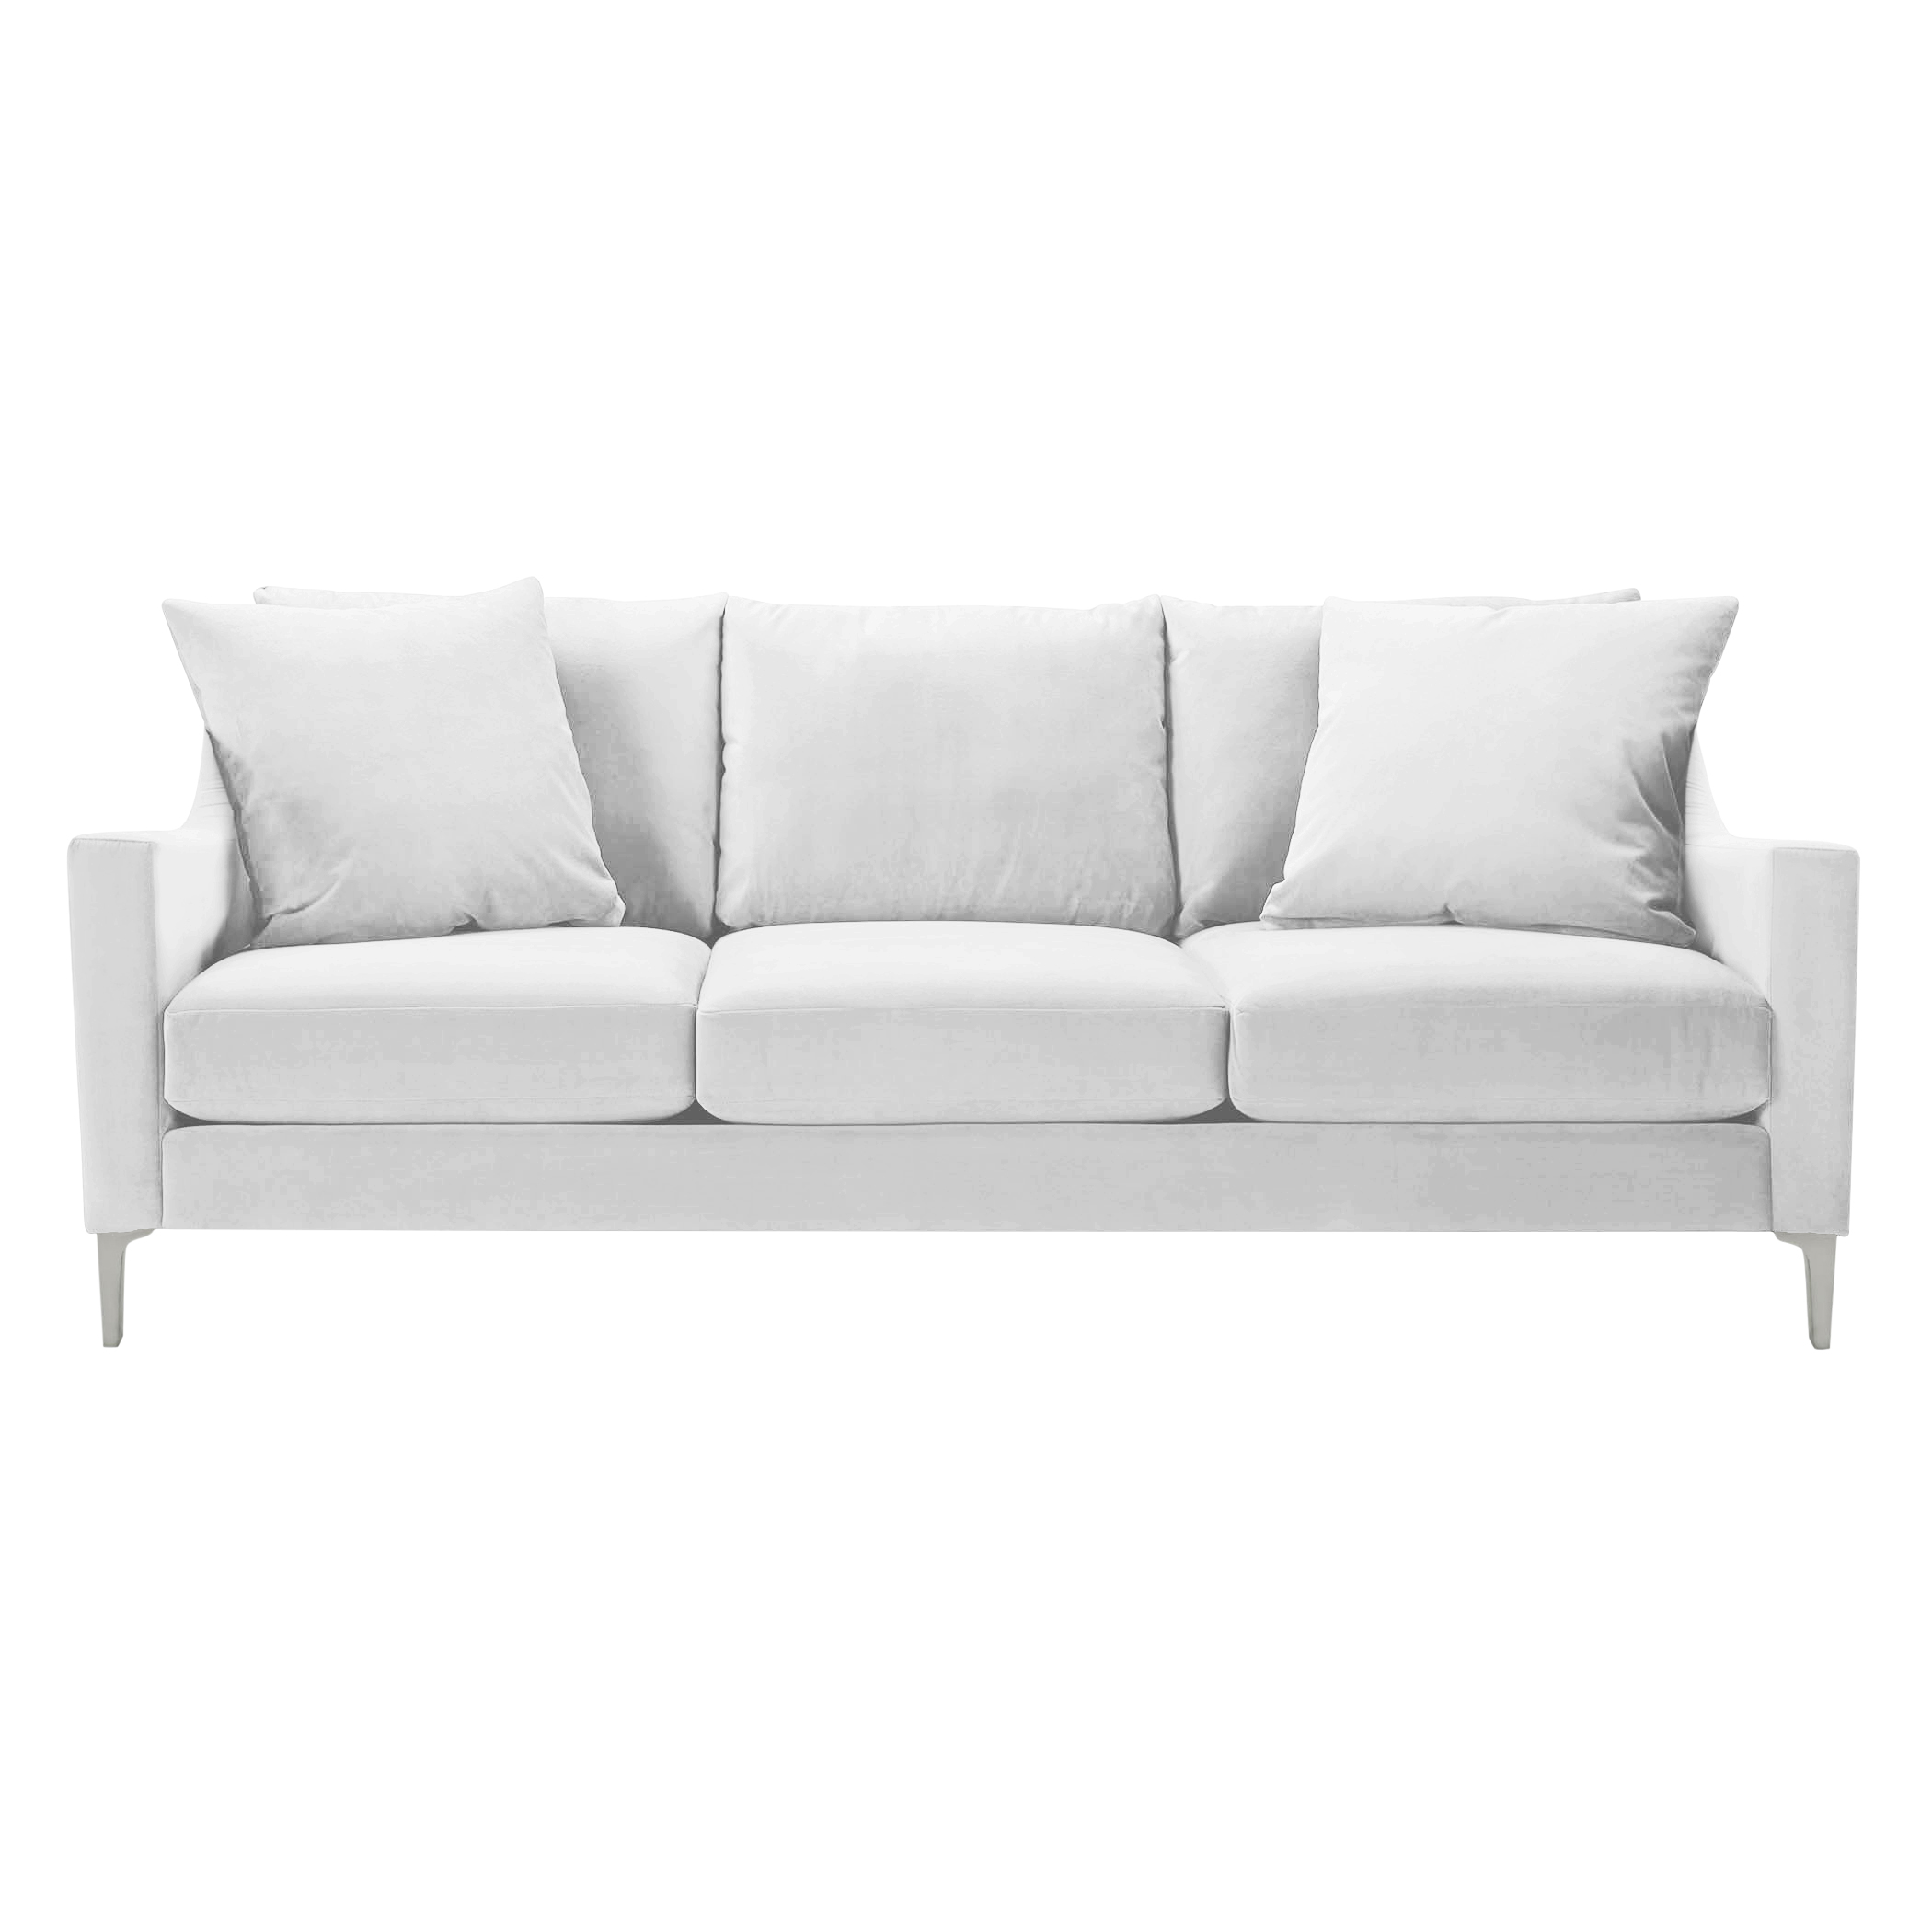 Details Slope Arm Sofa